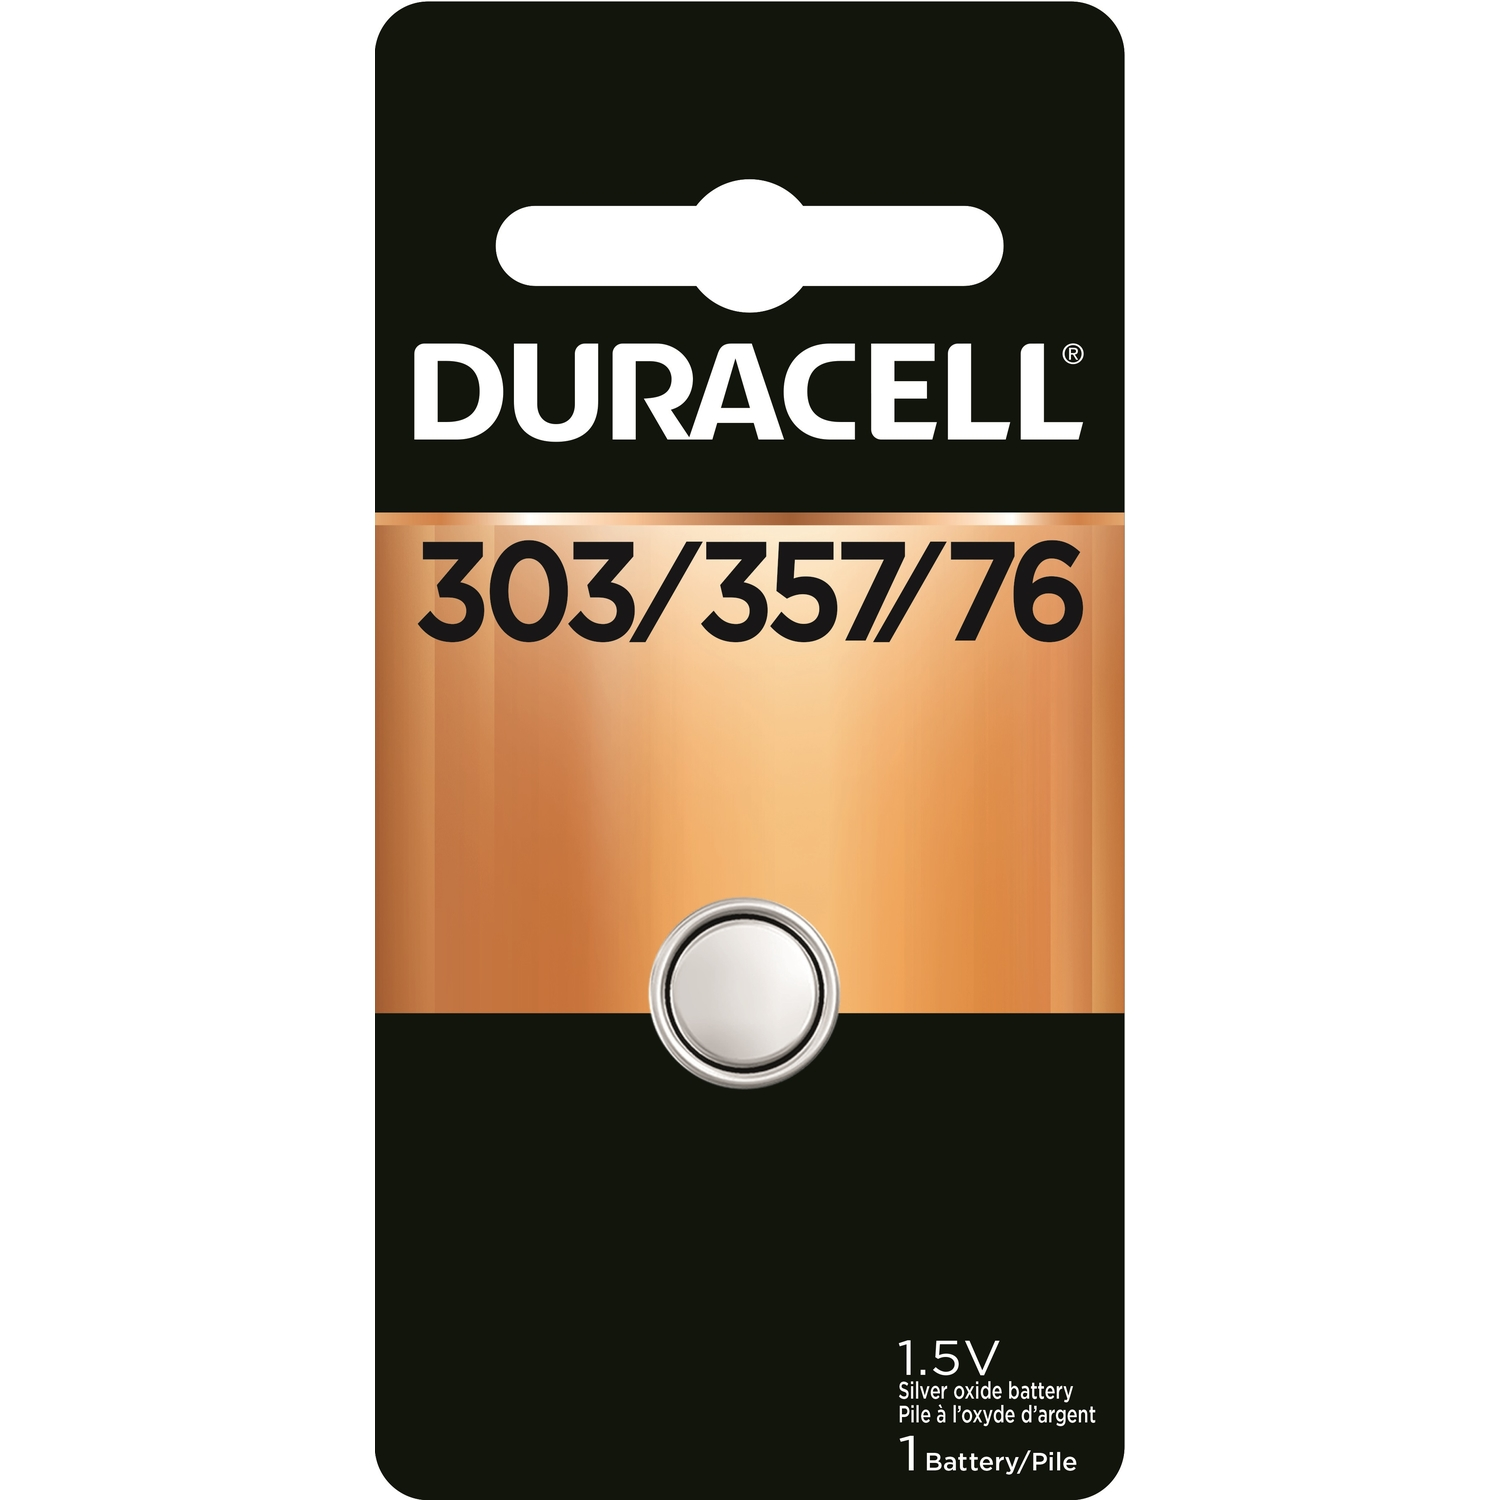 Duracell  Silver Oxide  Electronic/Watch Battery  1 pk 303/357